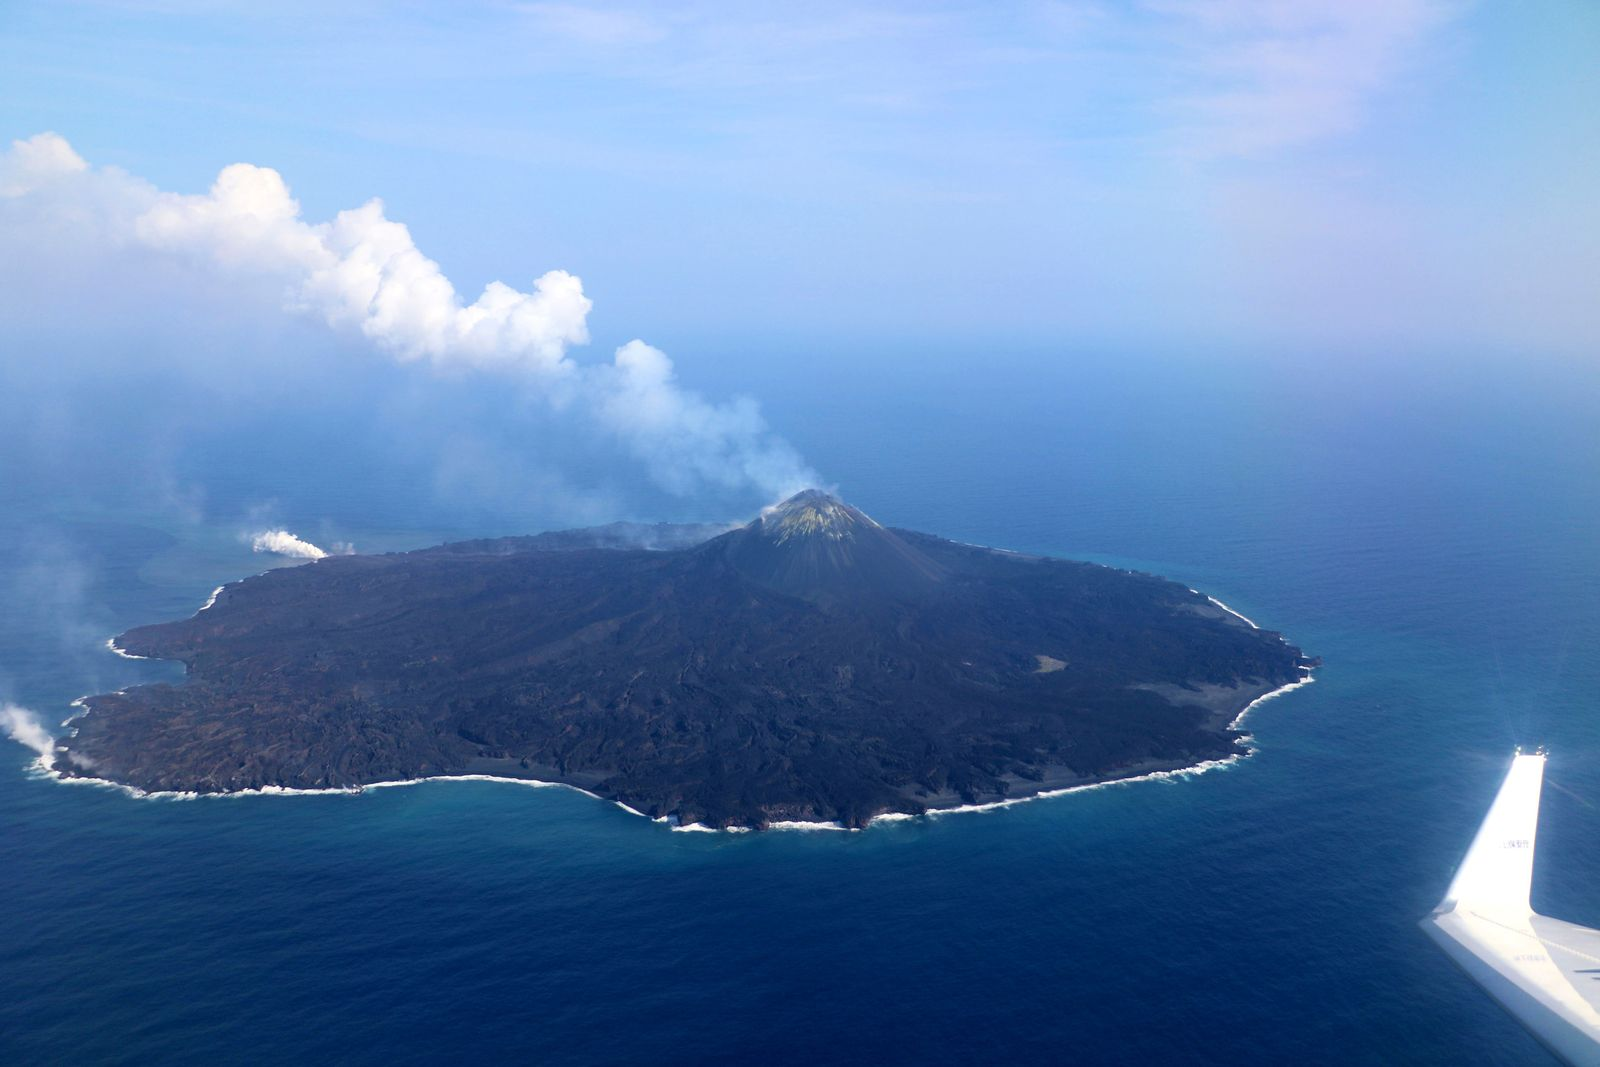 Nishinoshima - 19.04. 2020 / 15h16 - fumeroles au cône et à l'entrée en mer d'une coulée de lave - photo Japan Coast Guards